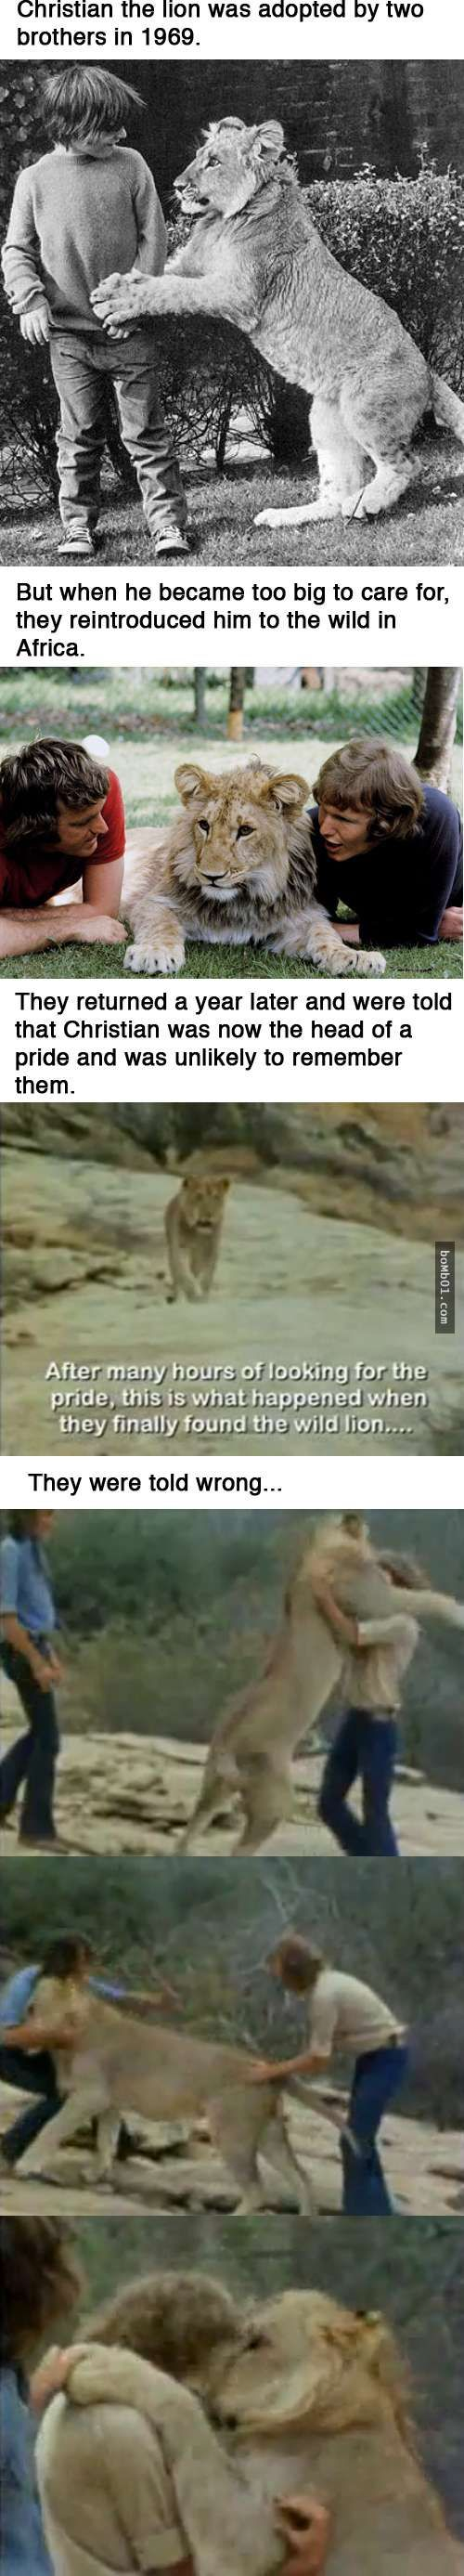 Alright, this is really cute, but how the hell were they not concerned when a big ass lion started running at them?!